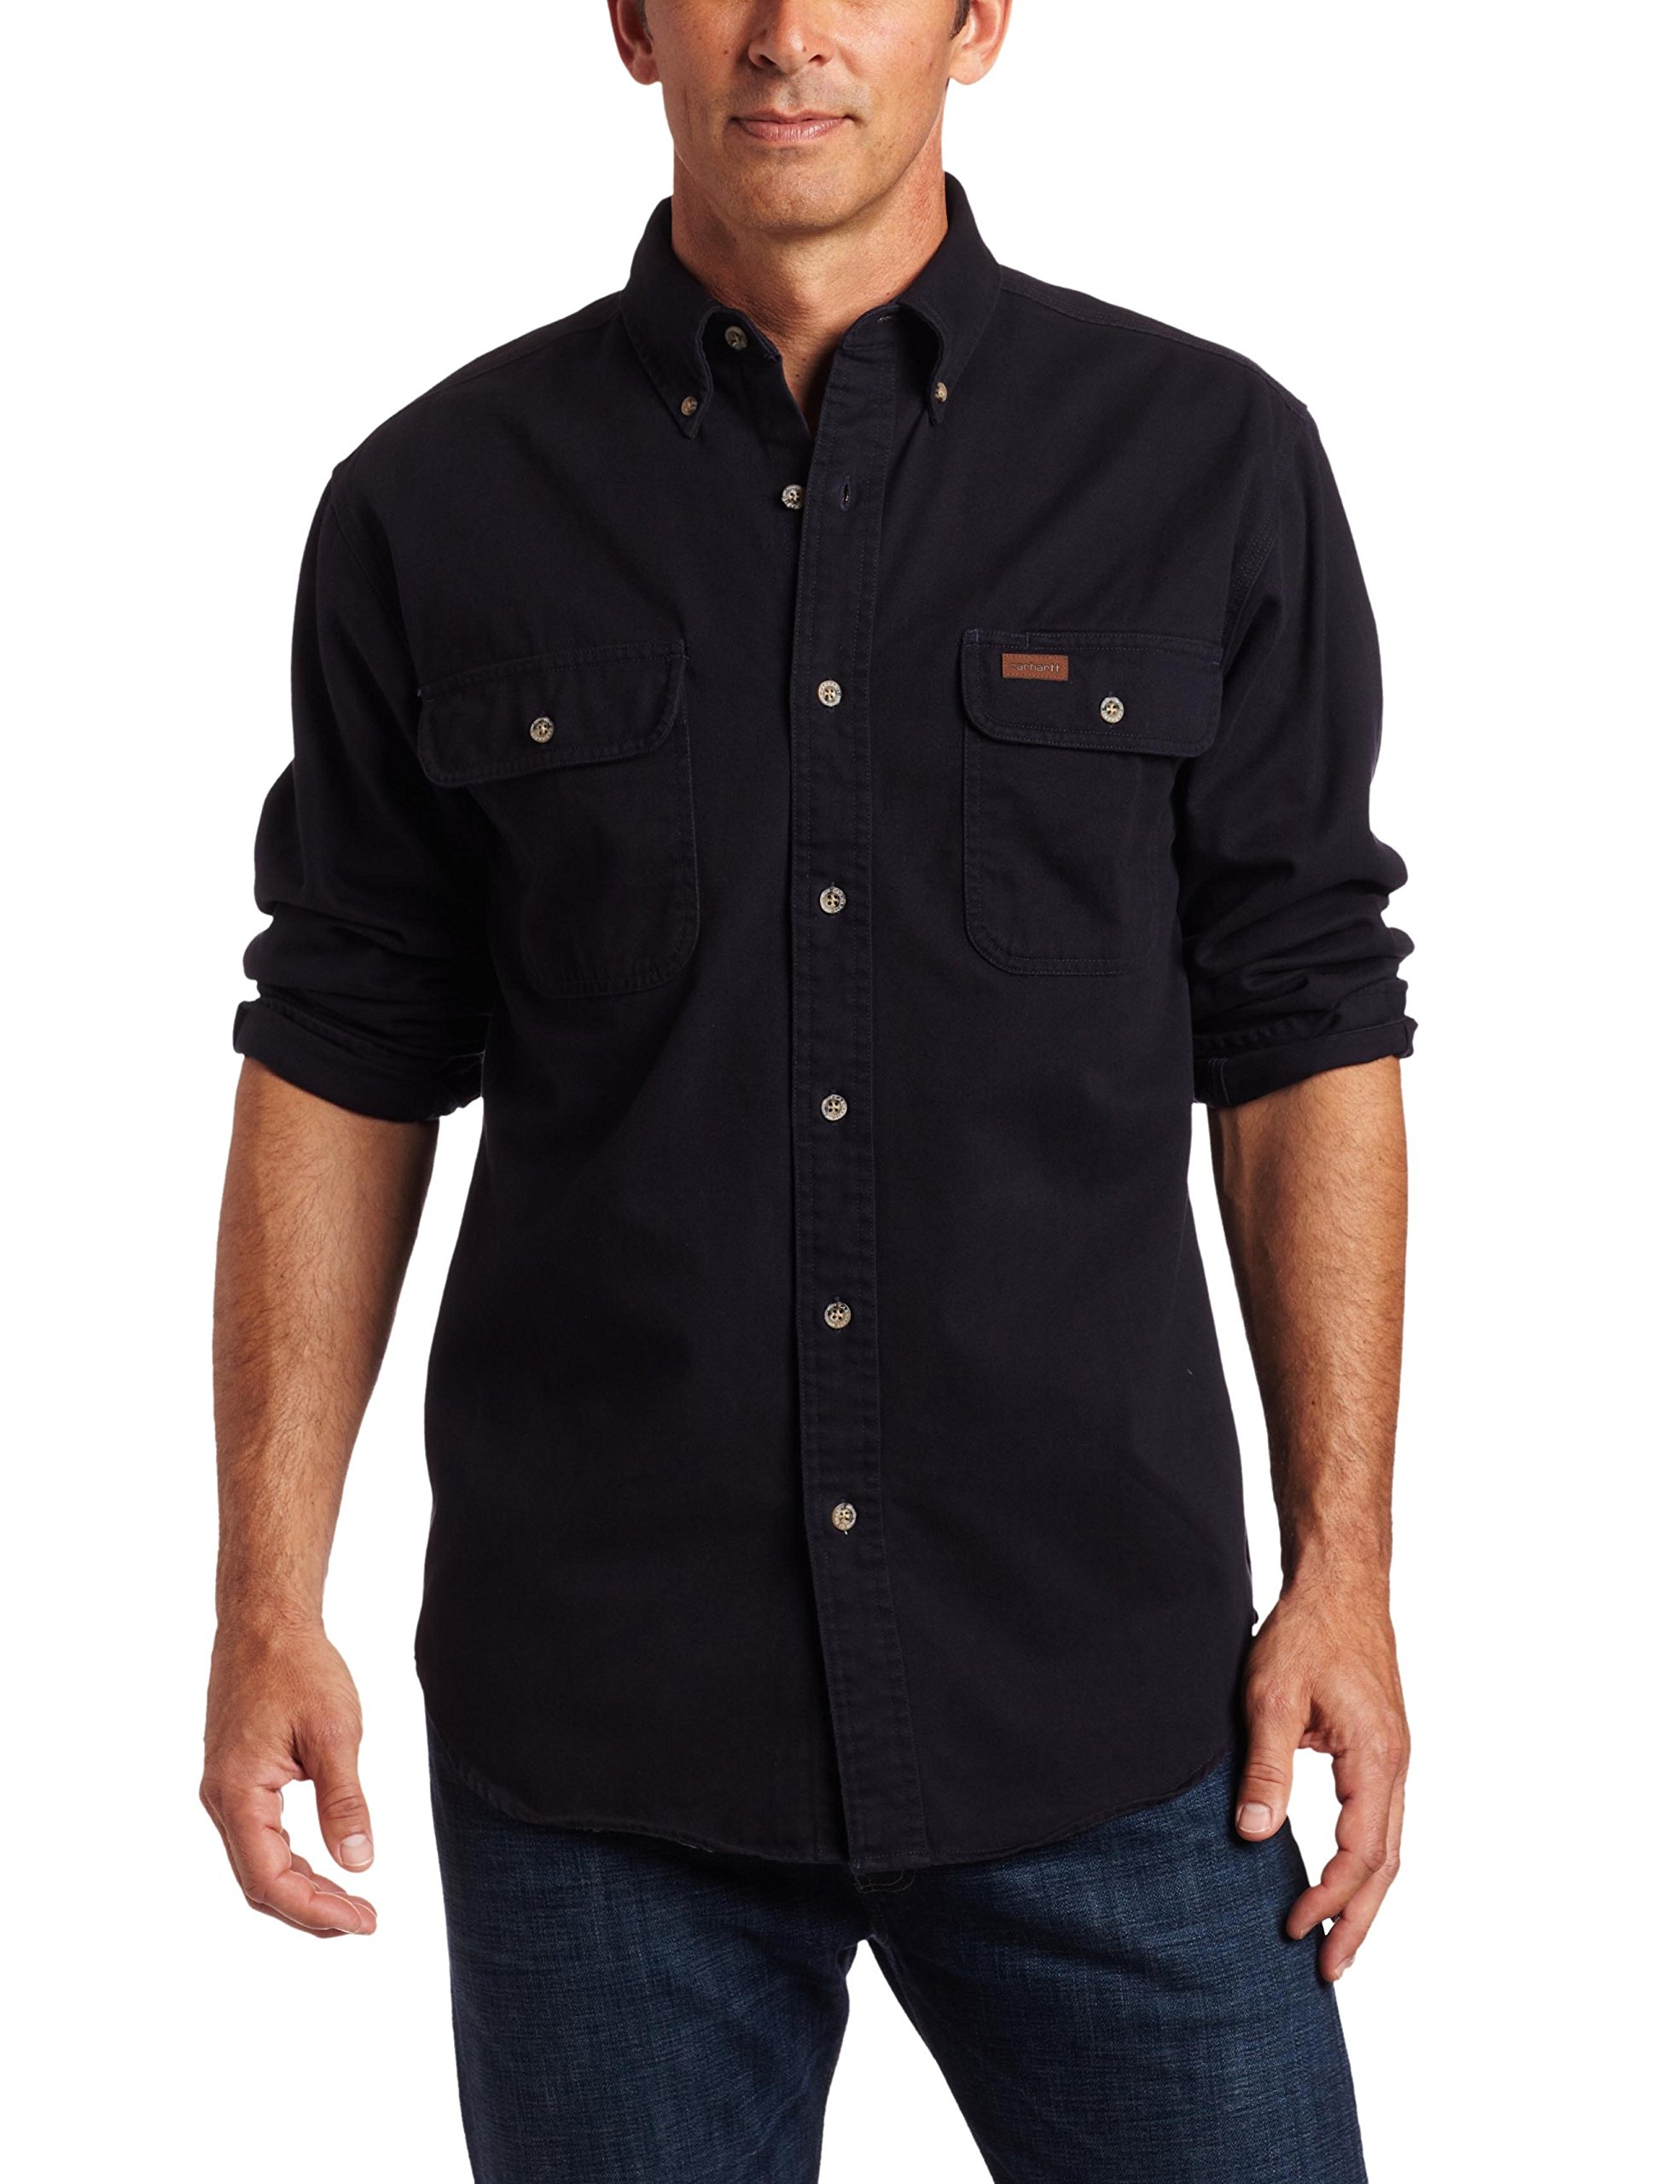 Carhartt Men's Oakman Sandstone Twill Original-Fit Work Shirt